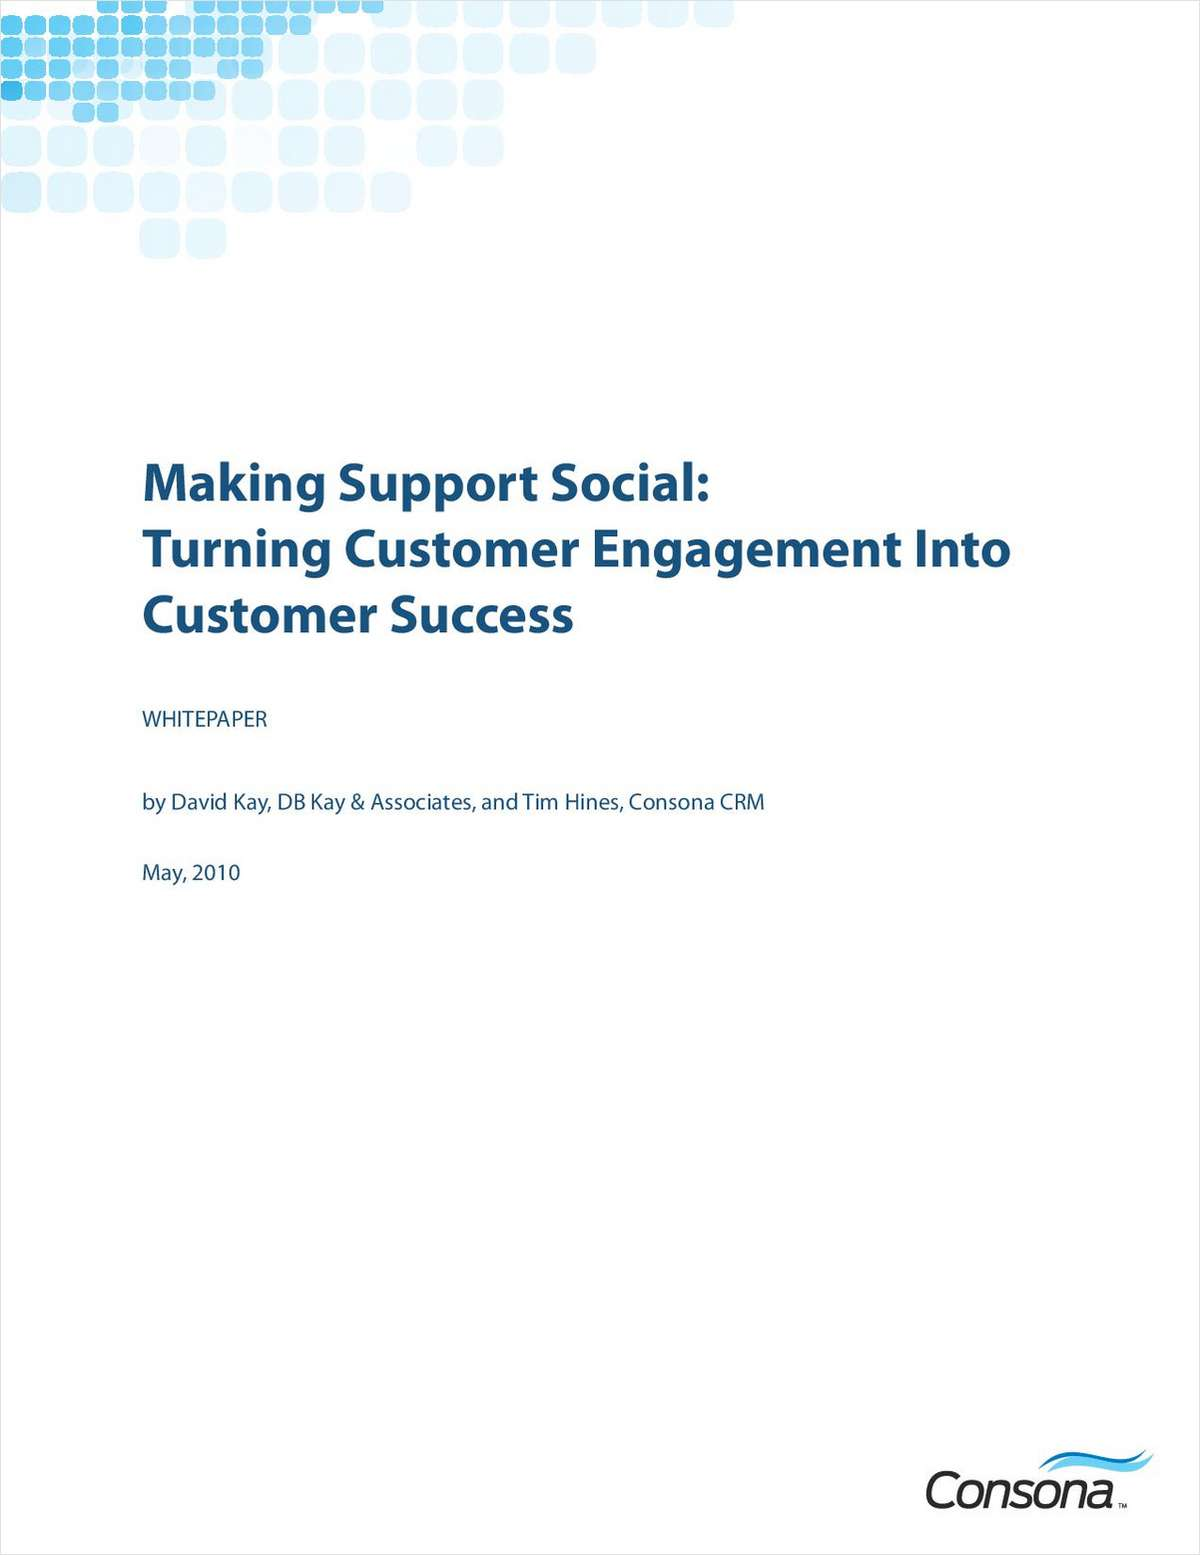 Make Support Social: Turn Customer Engagement into Customer Success